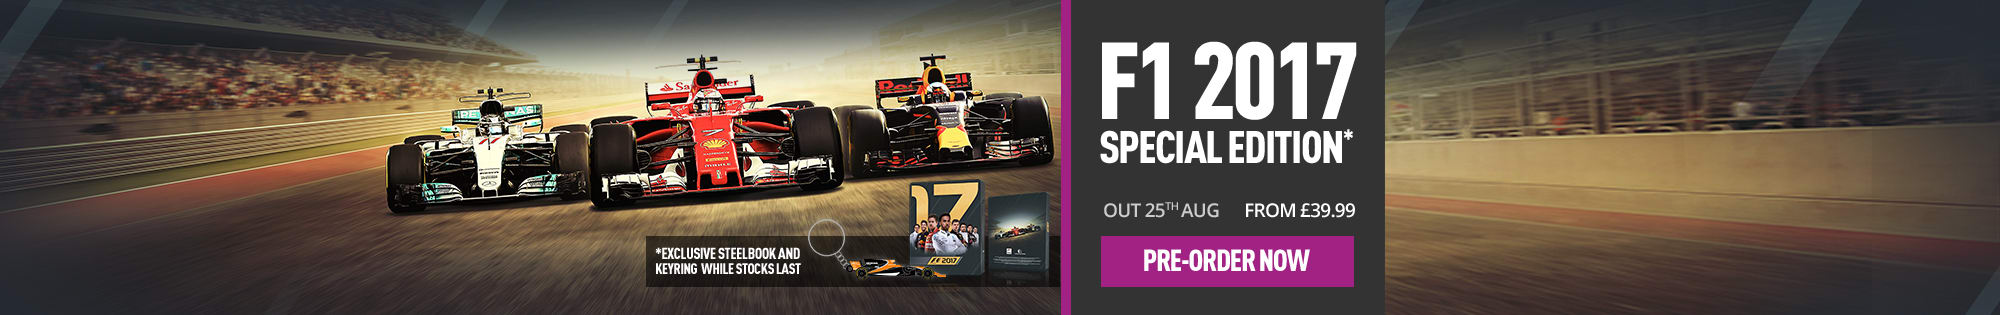 Pre-order F1 2017 - Homepage banner